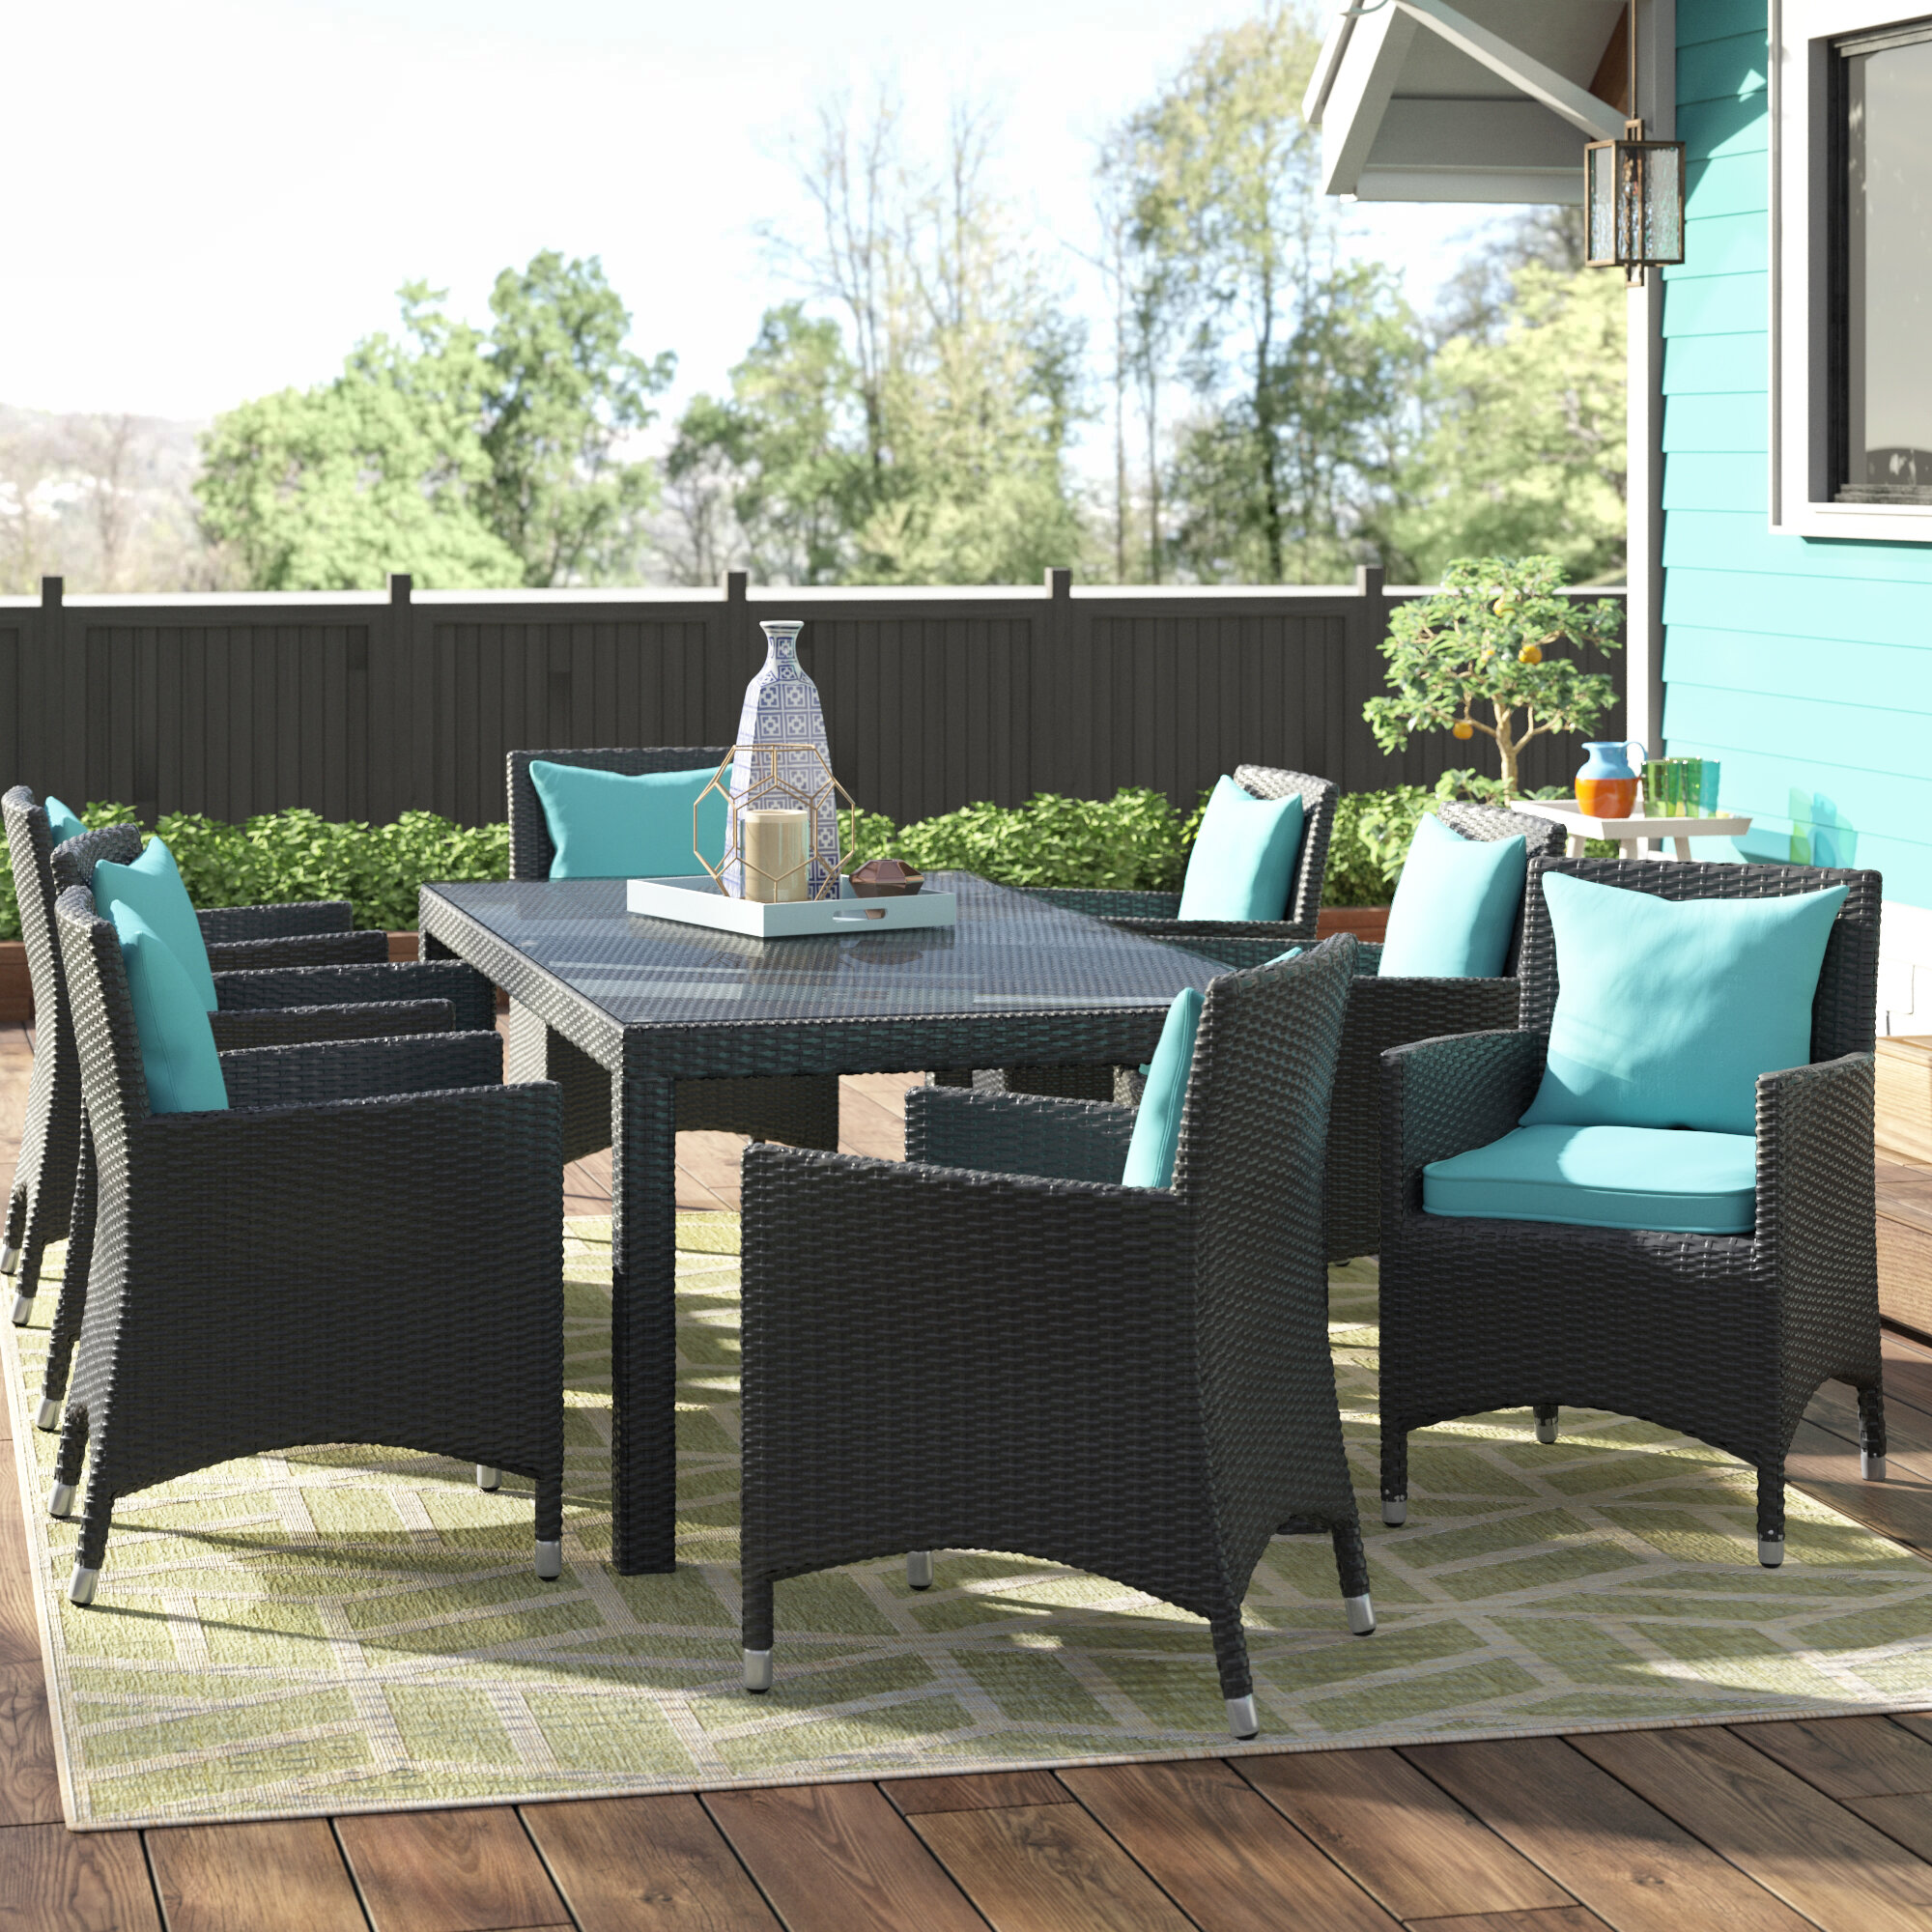 9 piece outdoor dining set dinner latitude run ryele piece outdoor patio dining set with cushions reviews wayfair